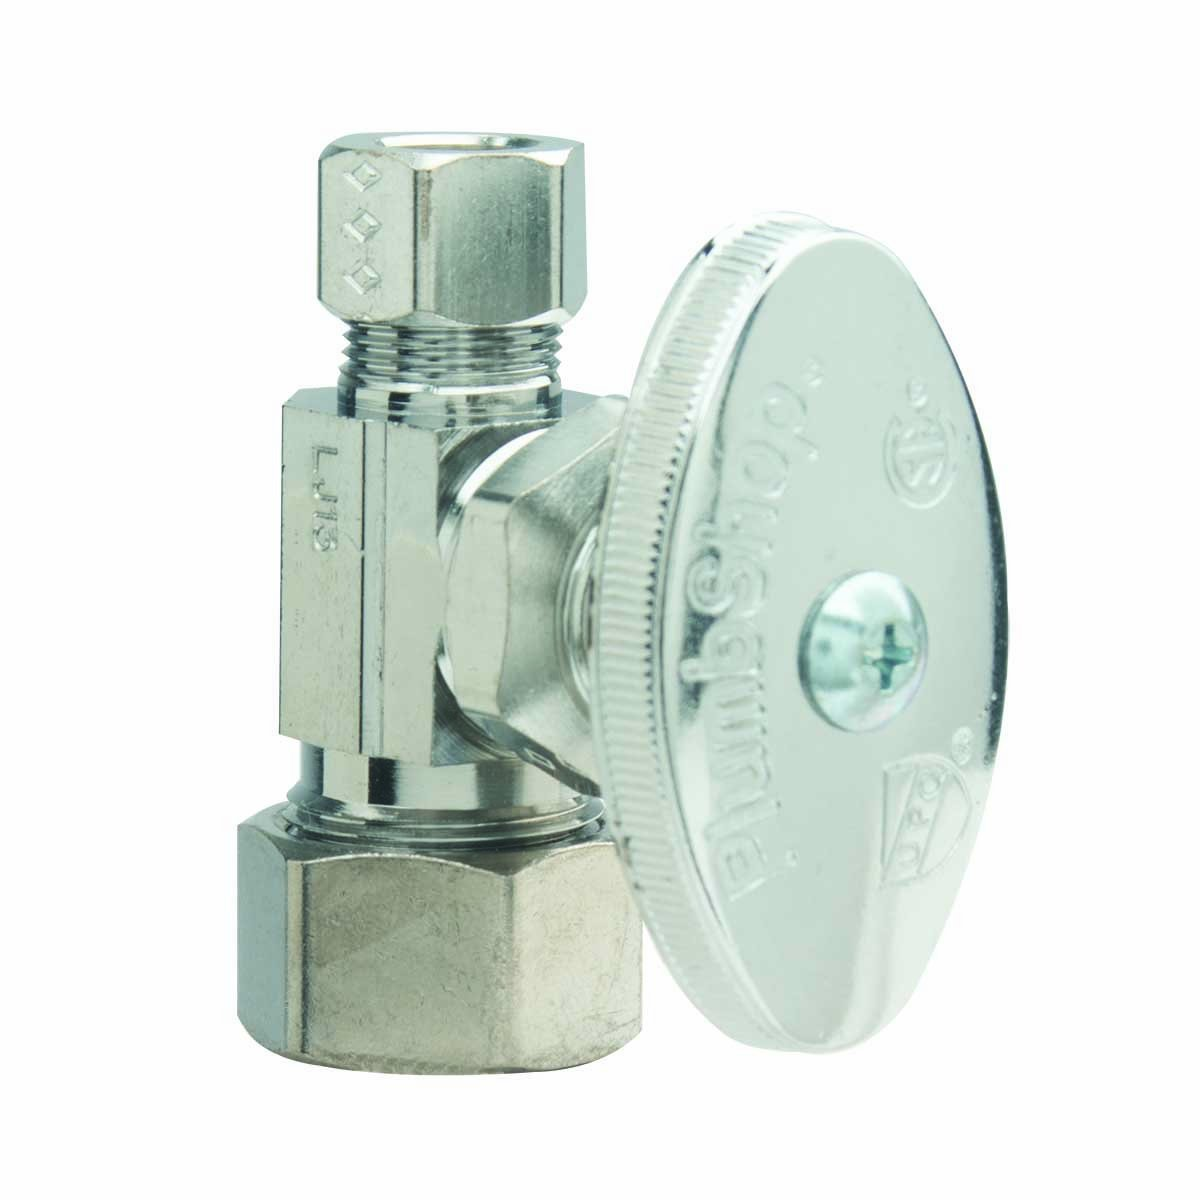 BrassCraft PSB54X Multi Turn Angle Water Shut Off Valve, Chrome Plated